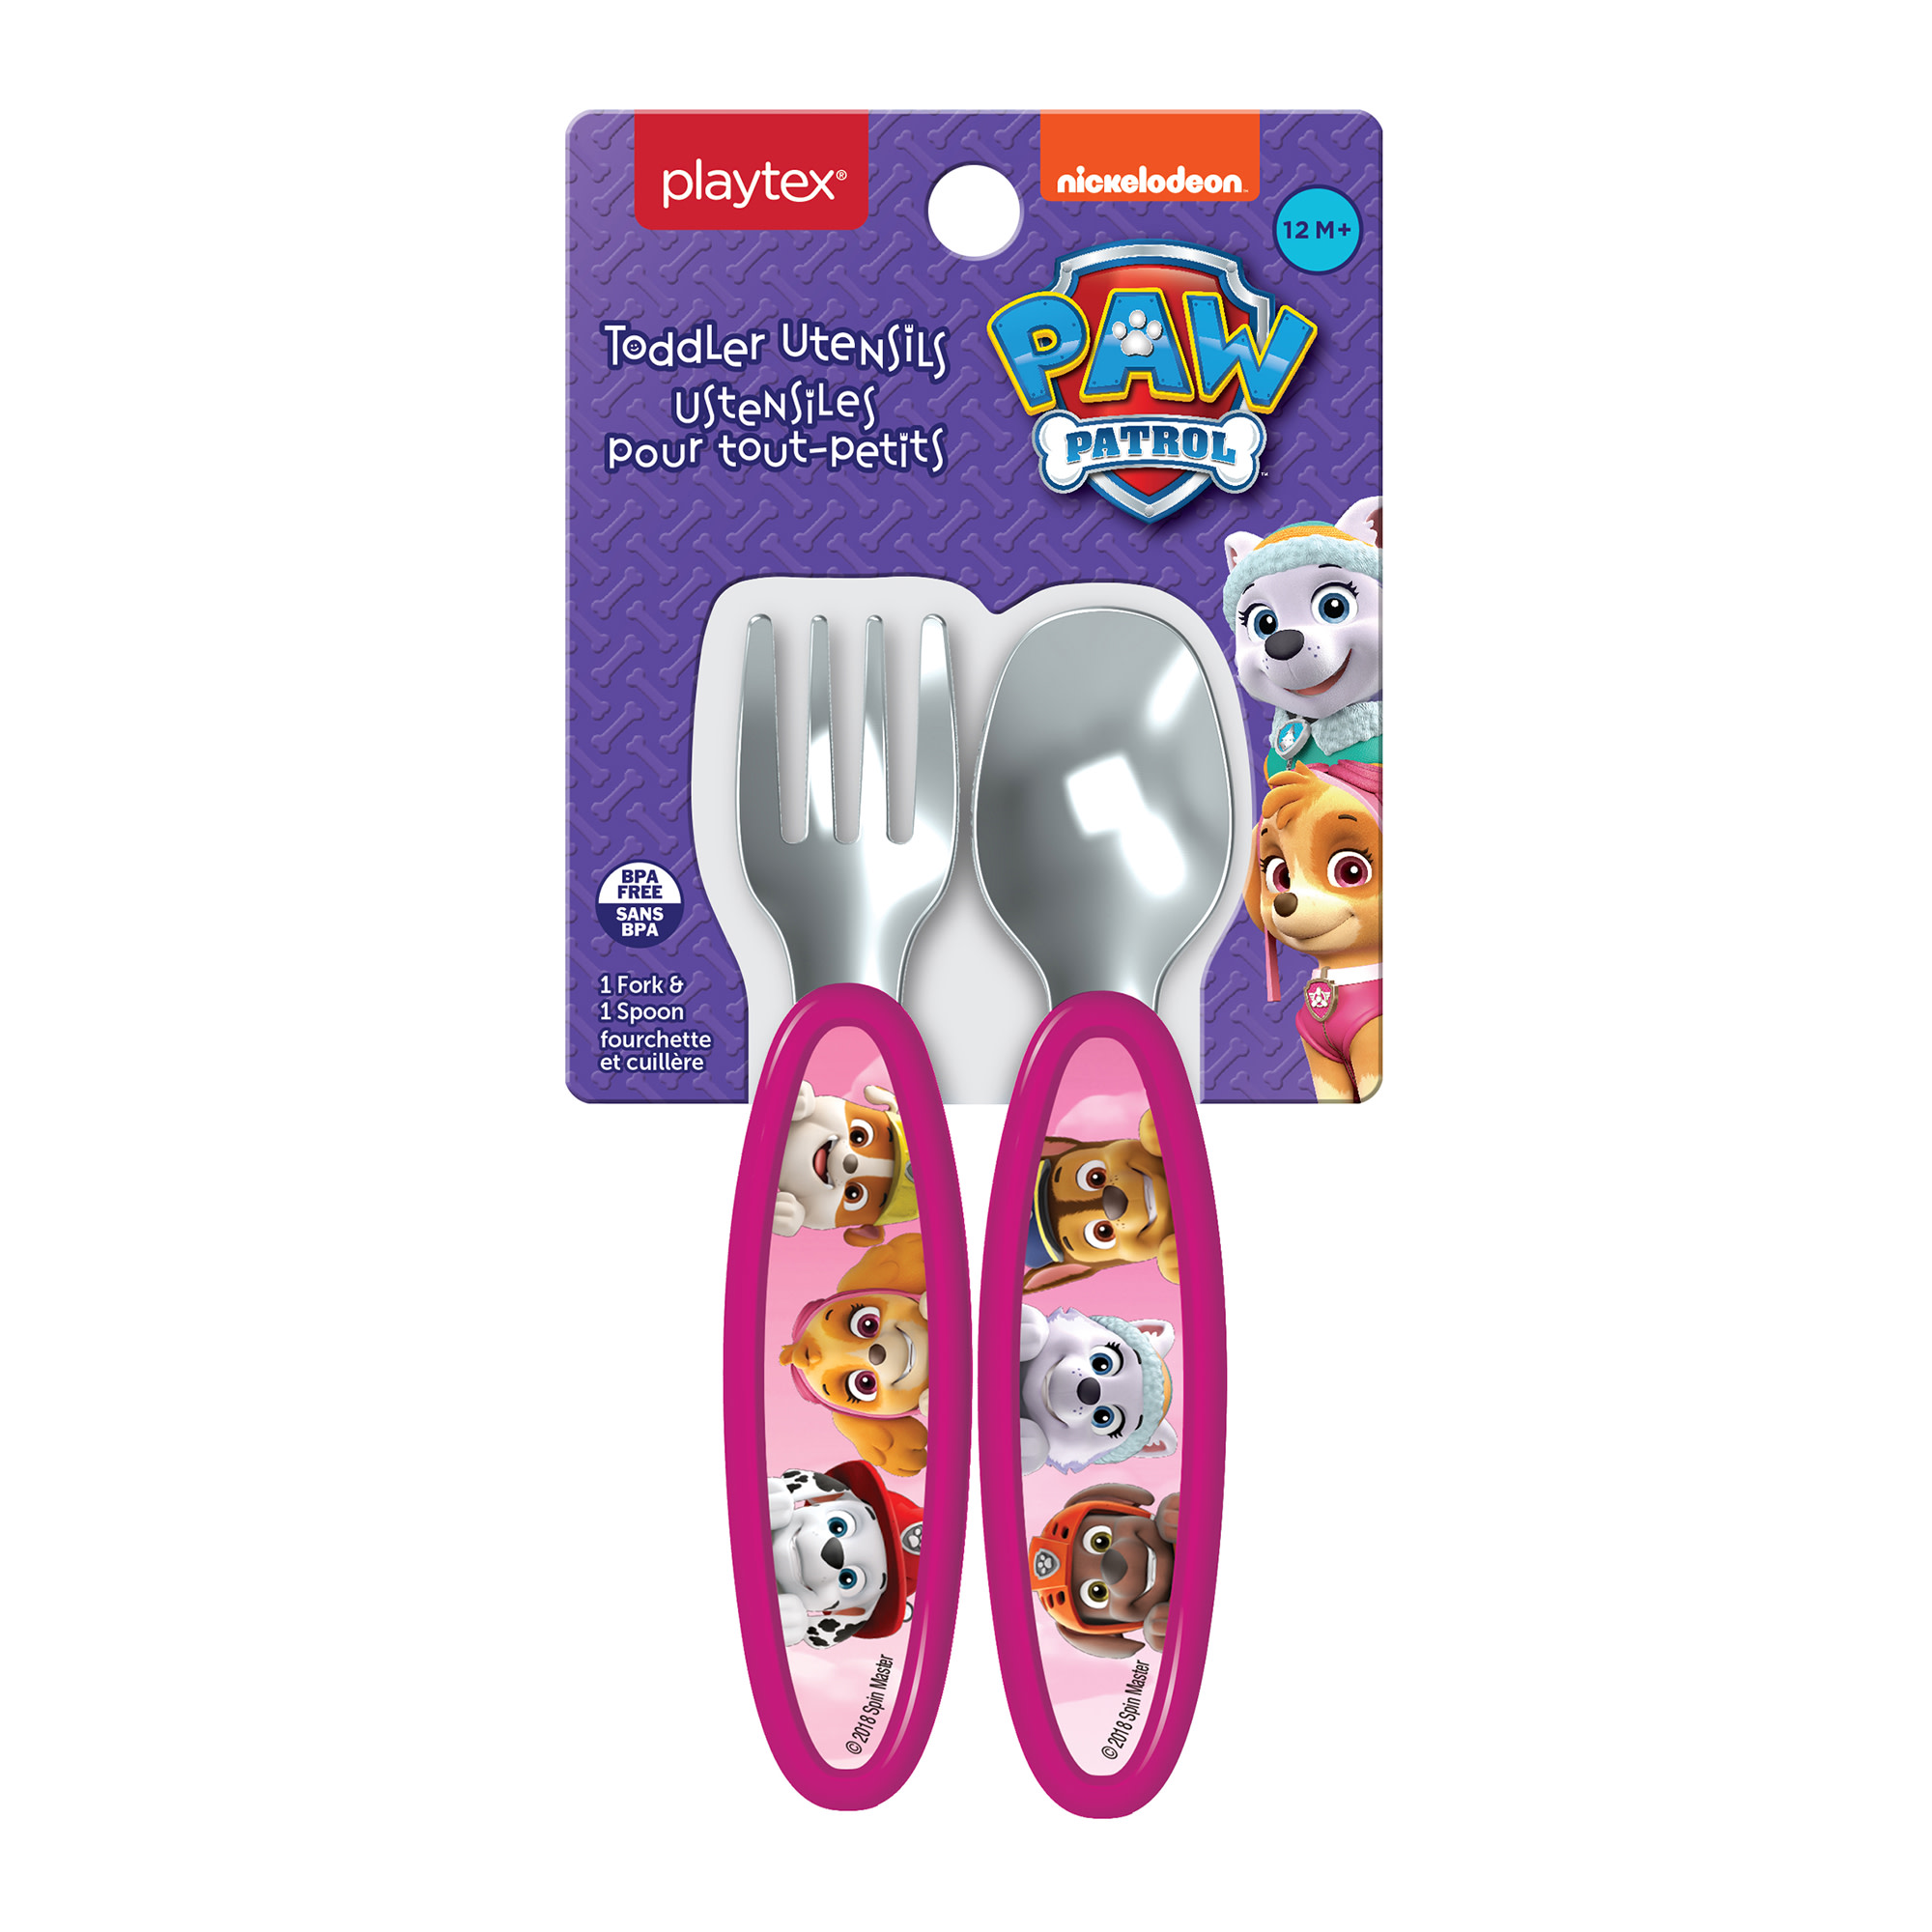 Playtex Mealtime Paw Patrol Pink Toddler Utensil Set for Girls Includes 1 Spoon and 1 Fork by Playtex Baby